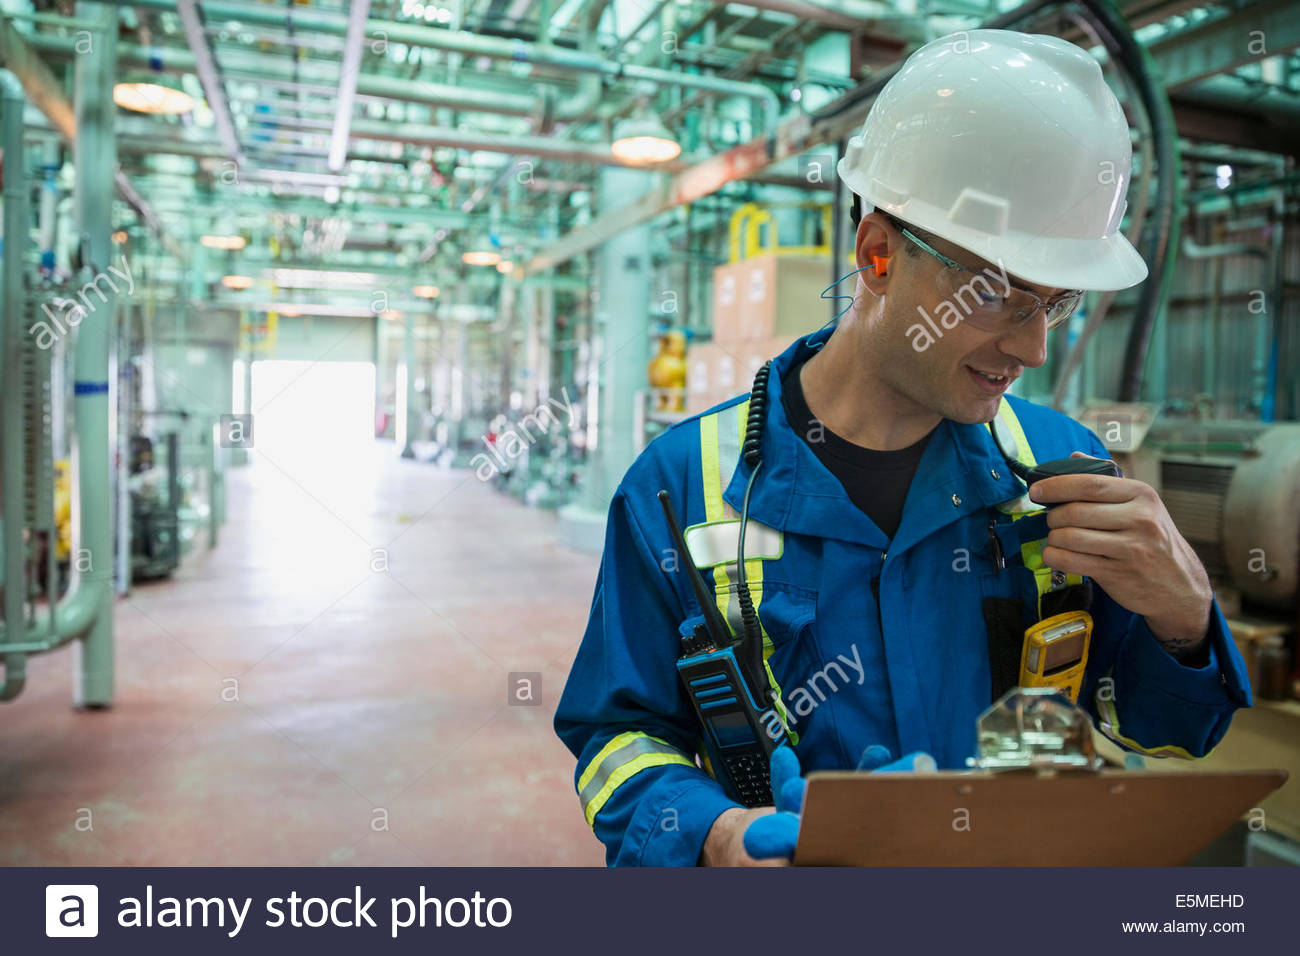 Male worker using walkie-talkie in gas plant - Stock Image